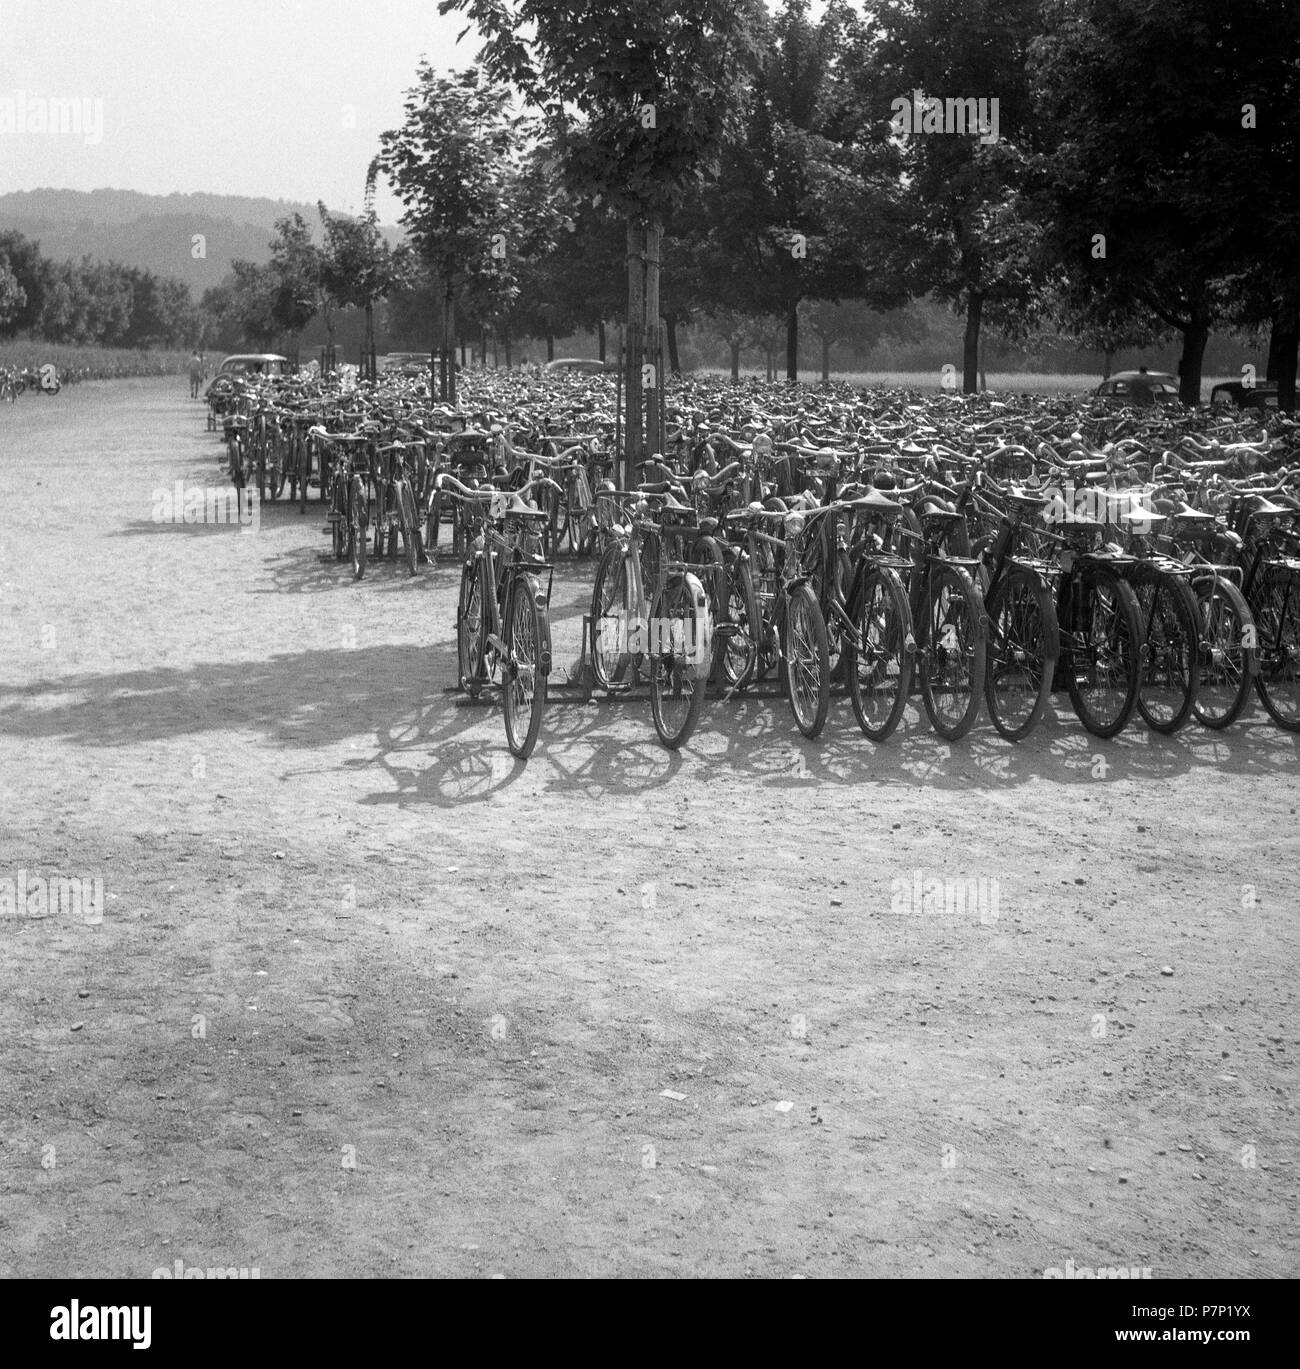 Bicycles parked, ca. 1945 to 1955, near Freiburg, Germany Stock Photo